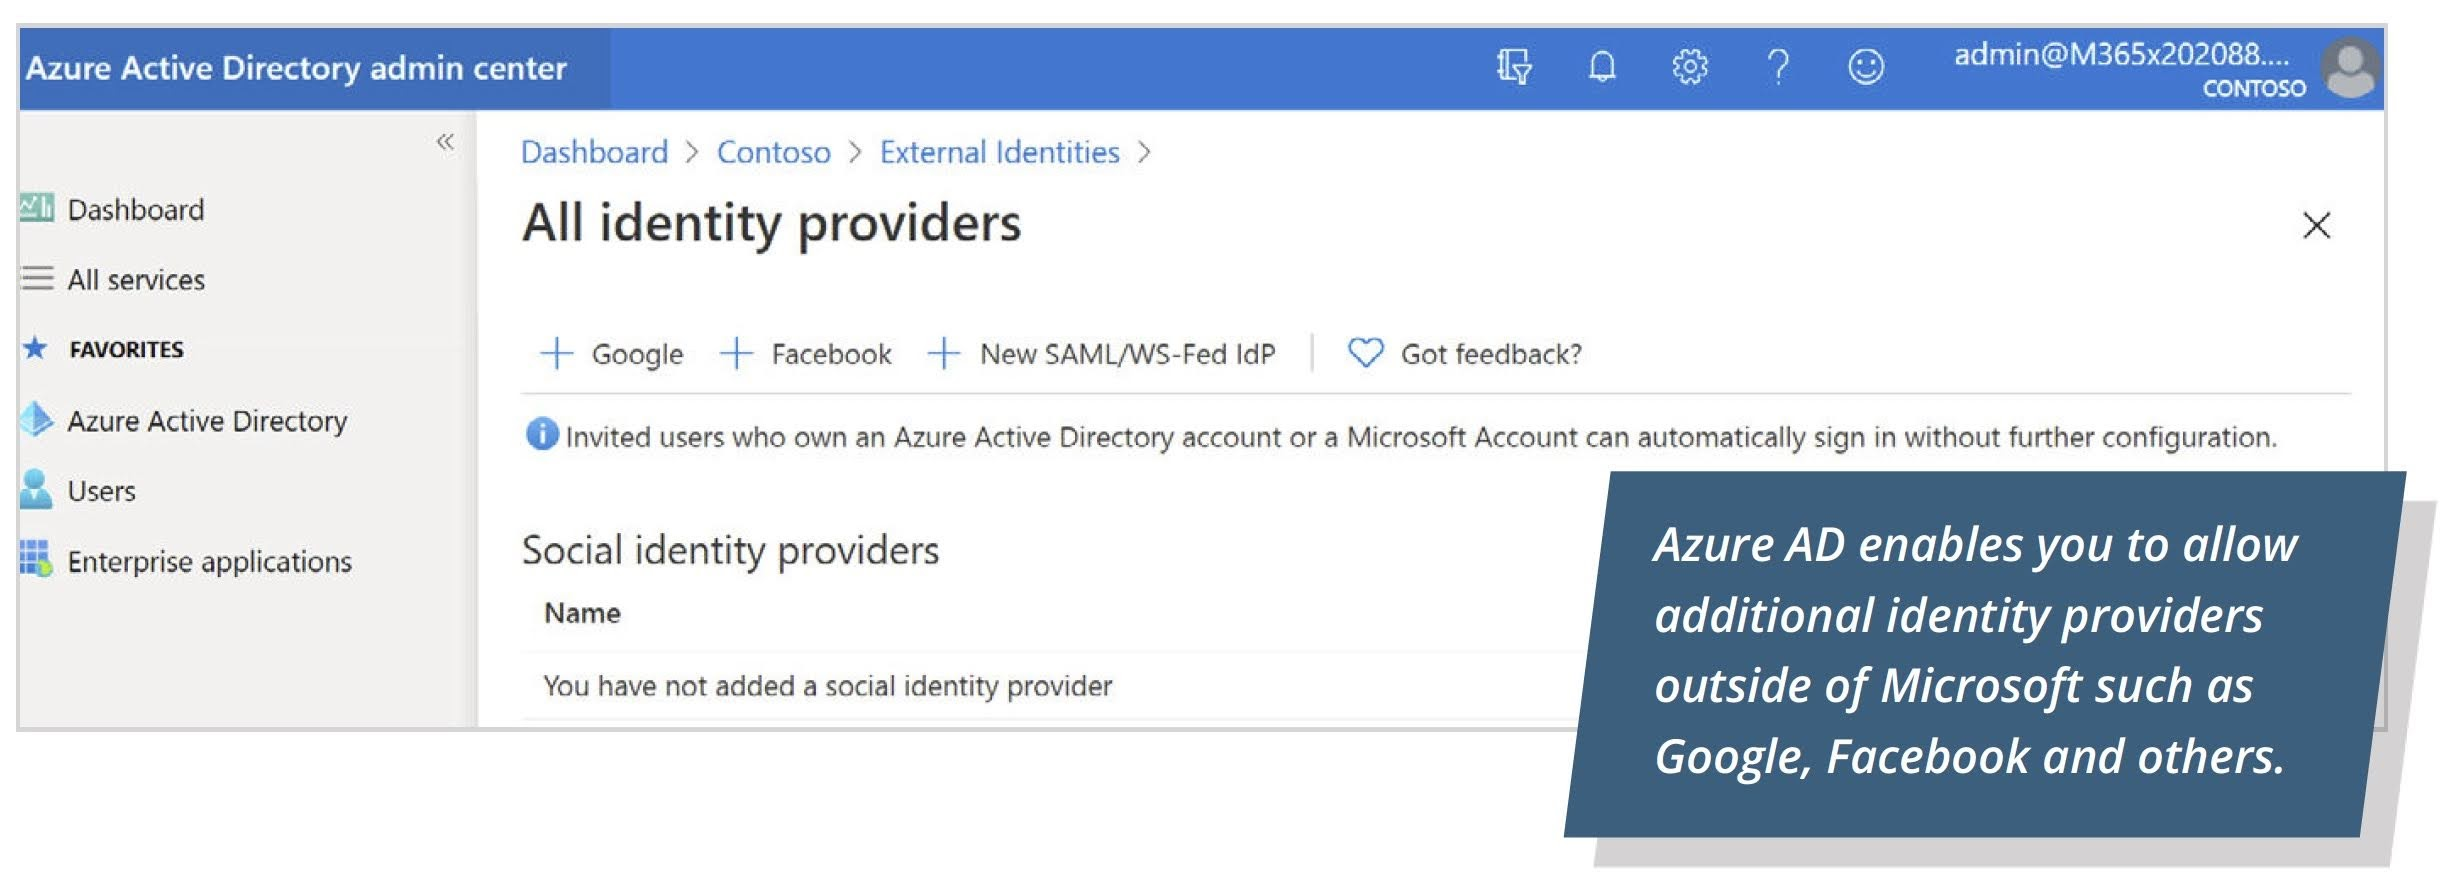 Azure AD enables you to allow additional identity providers outside of Microsoft such as Google, Facebook, and others.